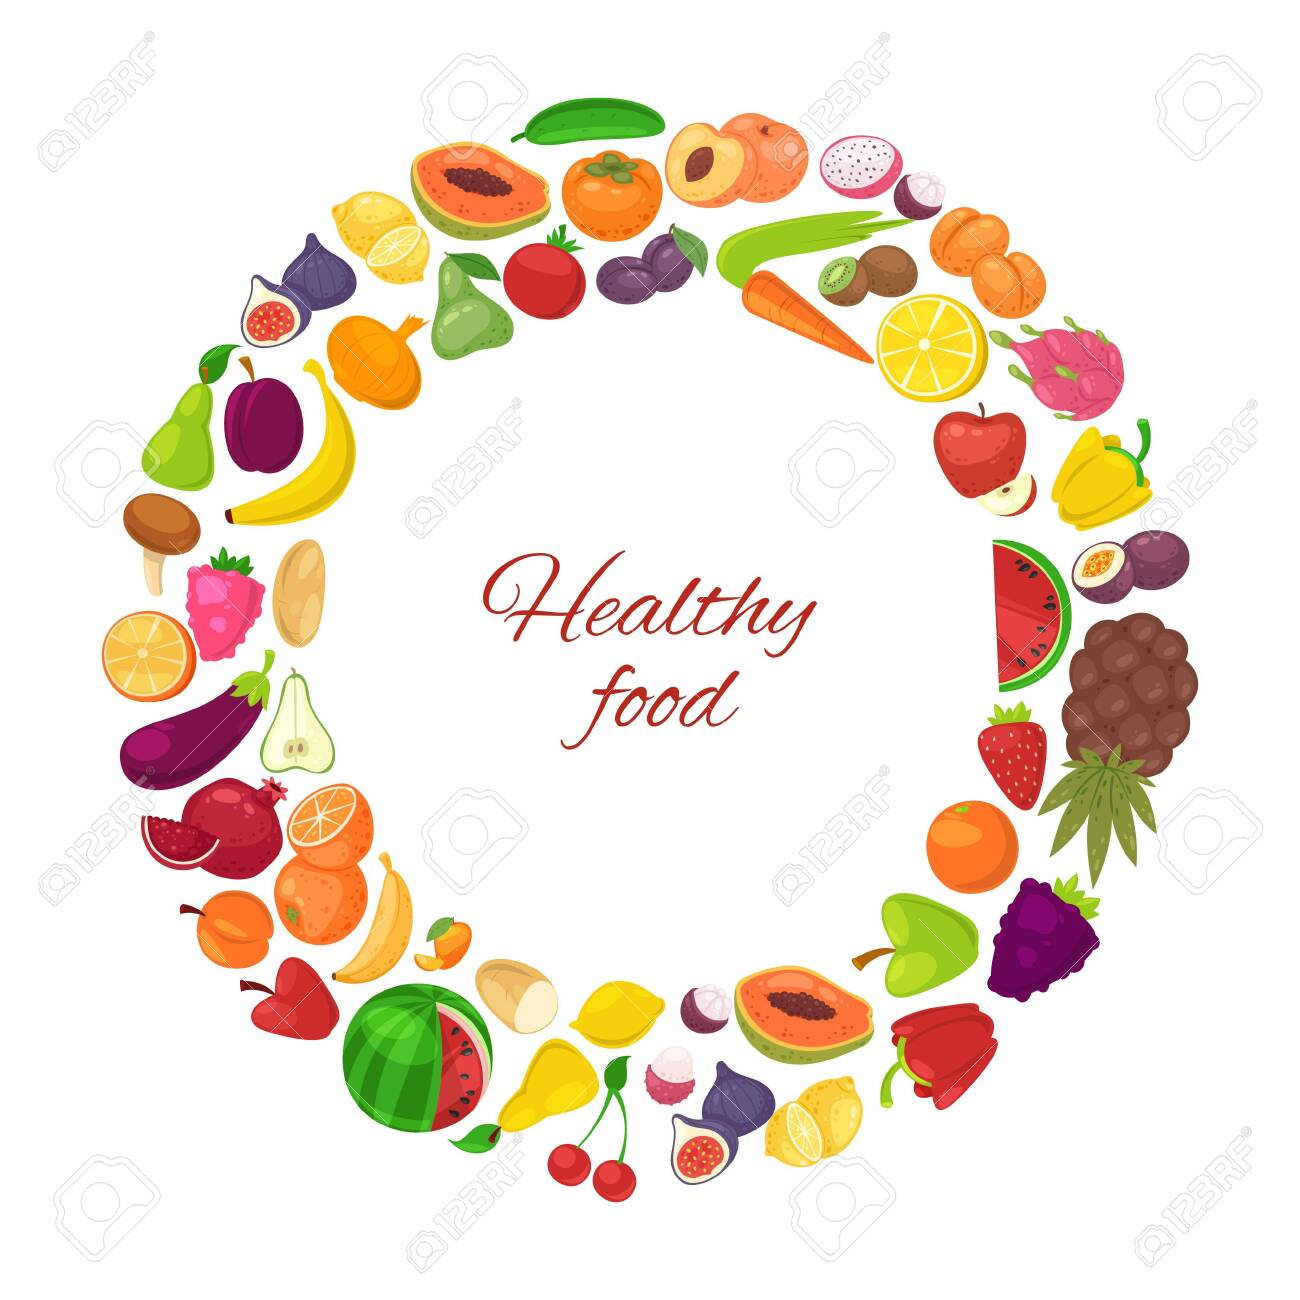 Healthy food with organic fruits and vegetables in circle isolated on white background vector illustration poster. Vegeterian fruits and veggie diet healthy food carrot, banana, oranges and lemon. - 138357267